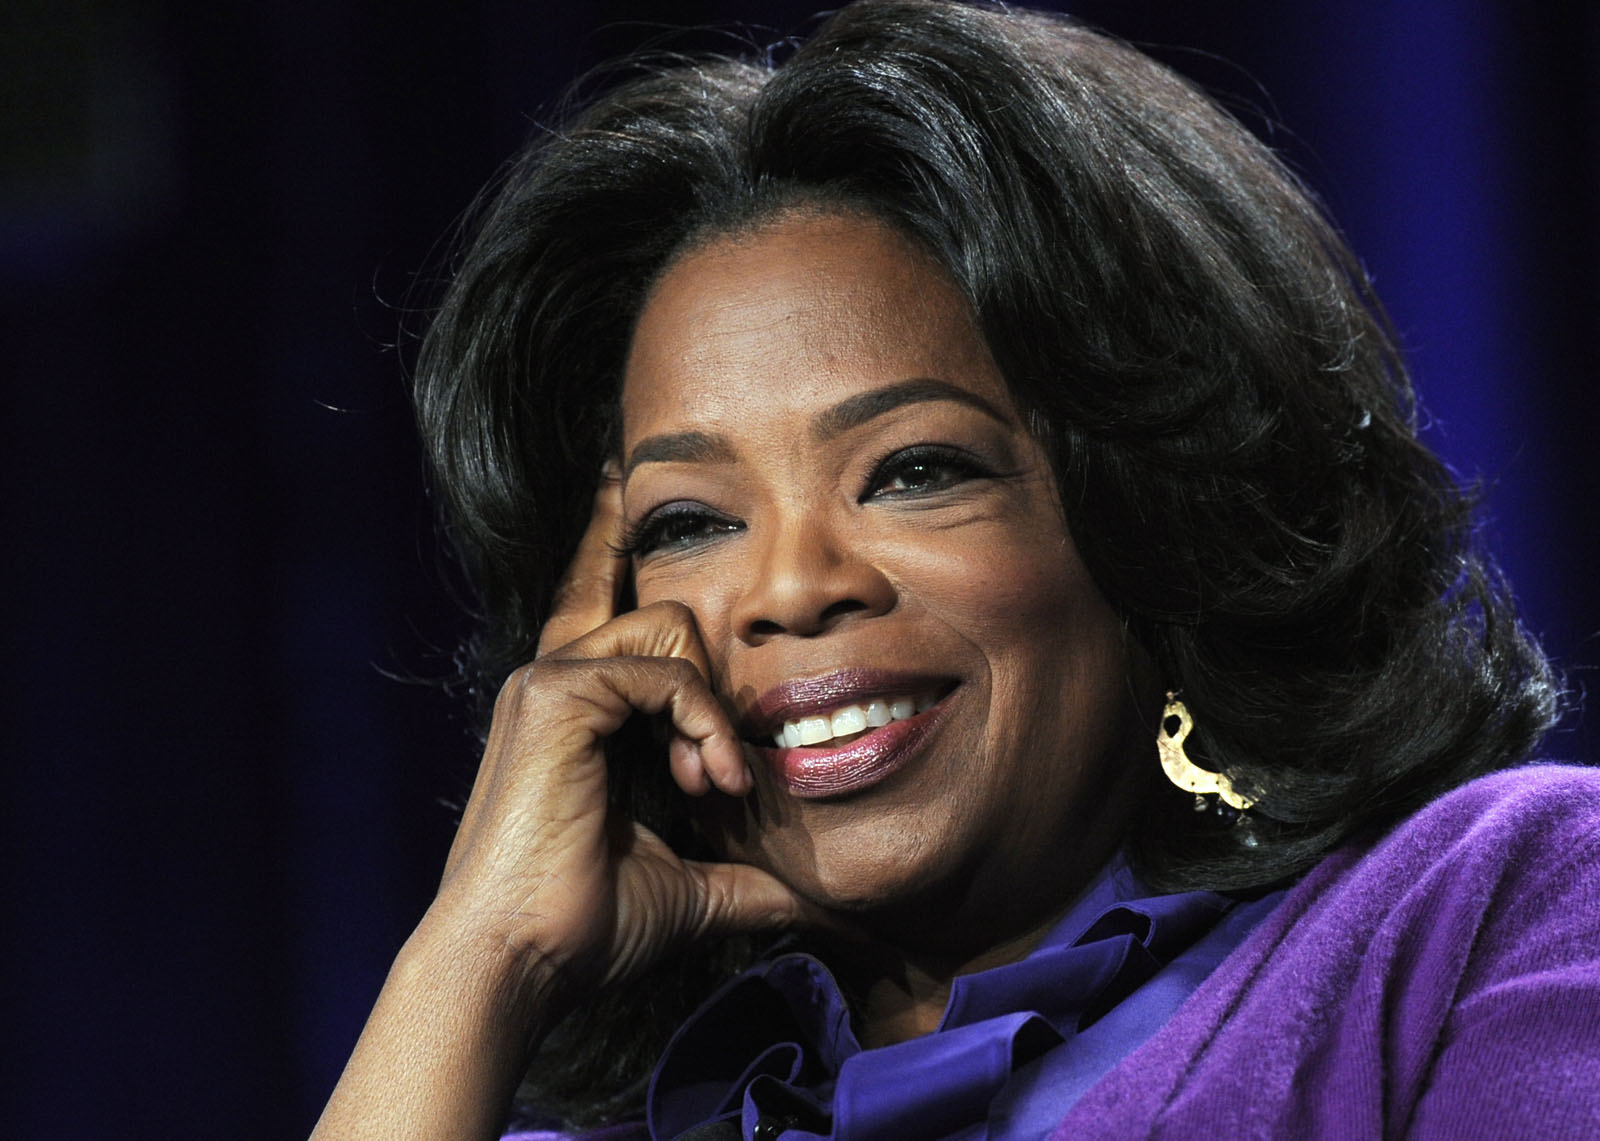 Oprah donates $1 million to DC women's charity